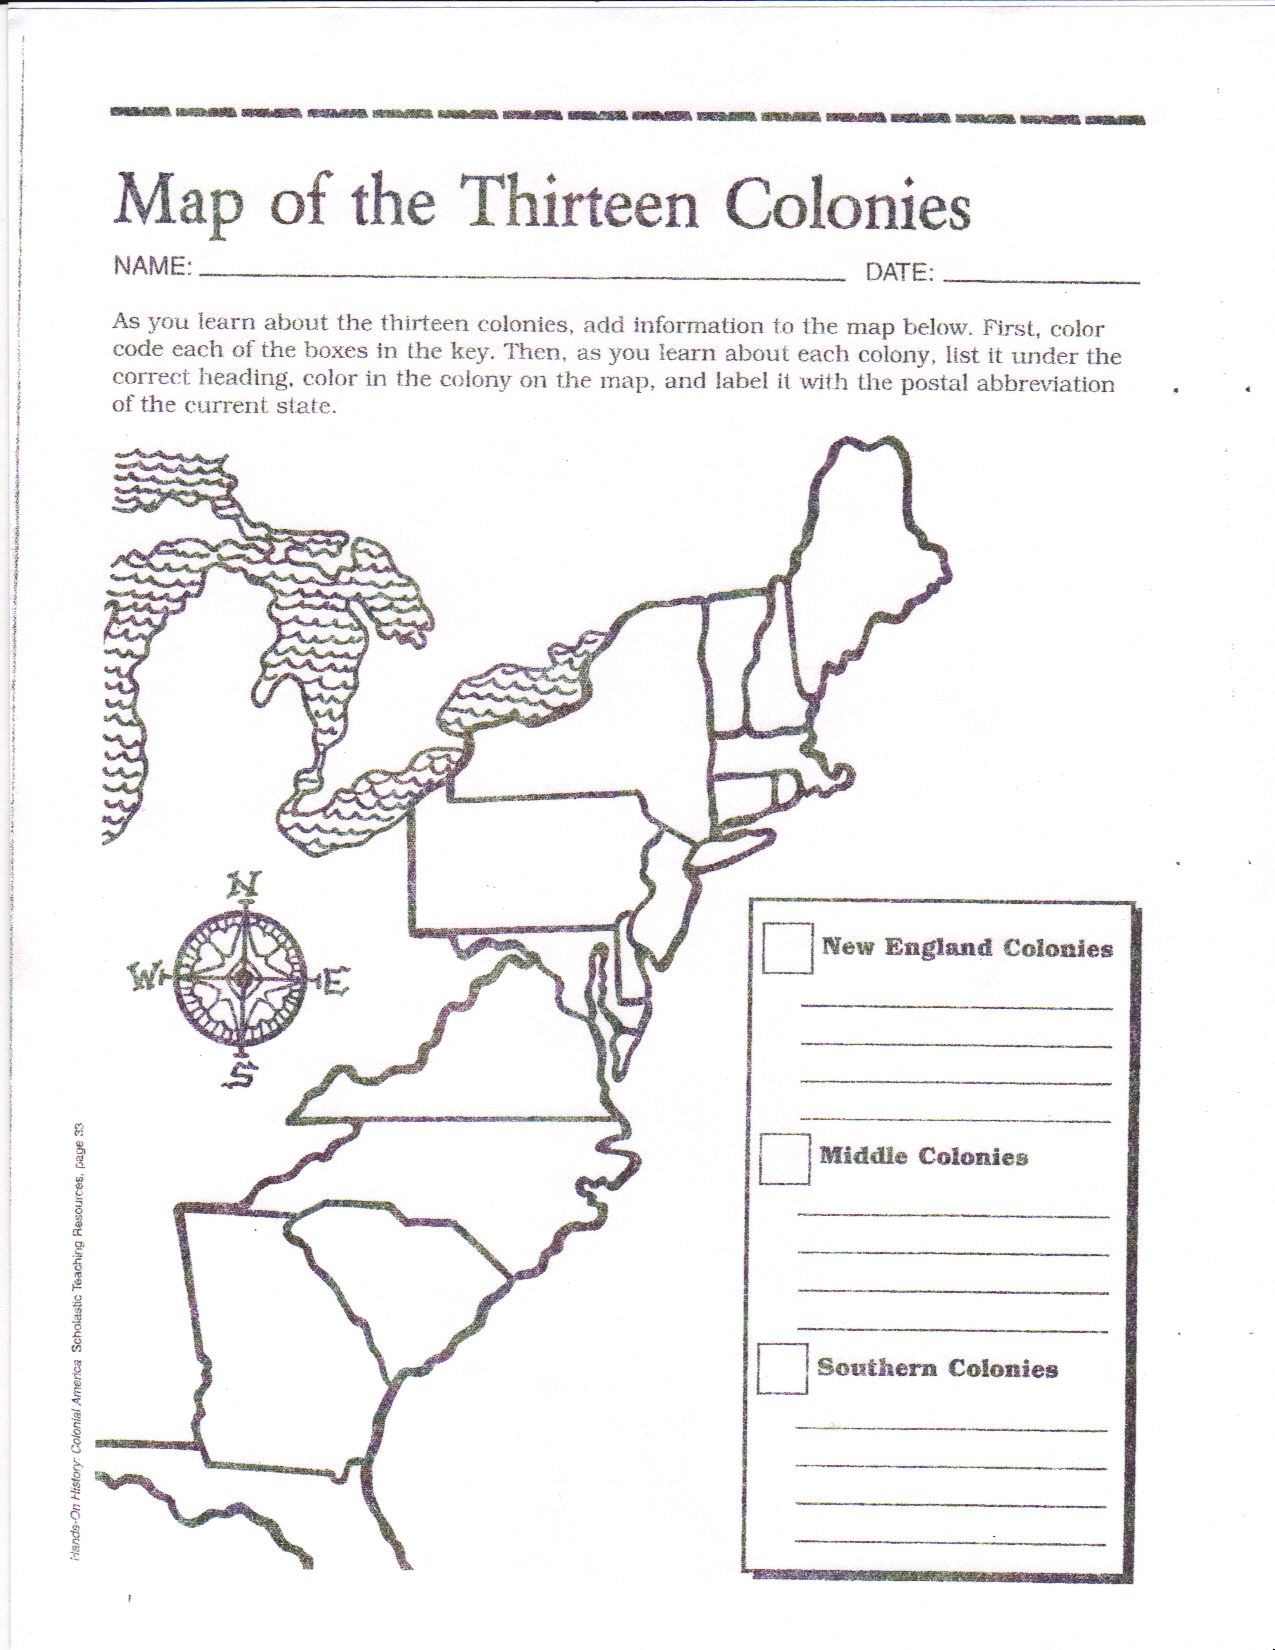 Britain Changes Its Colonial Policies Worksheet Answers